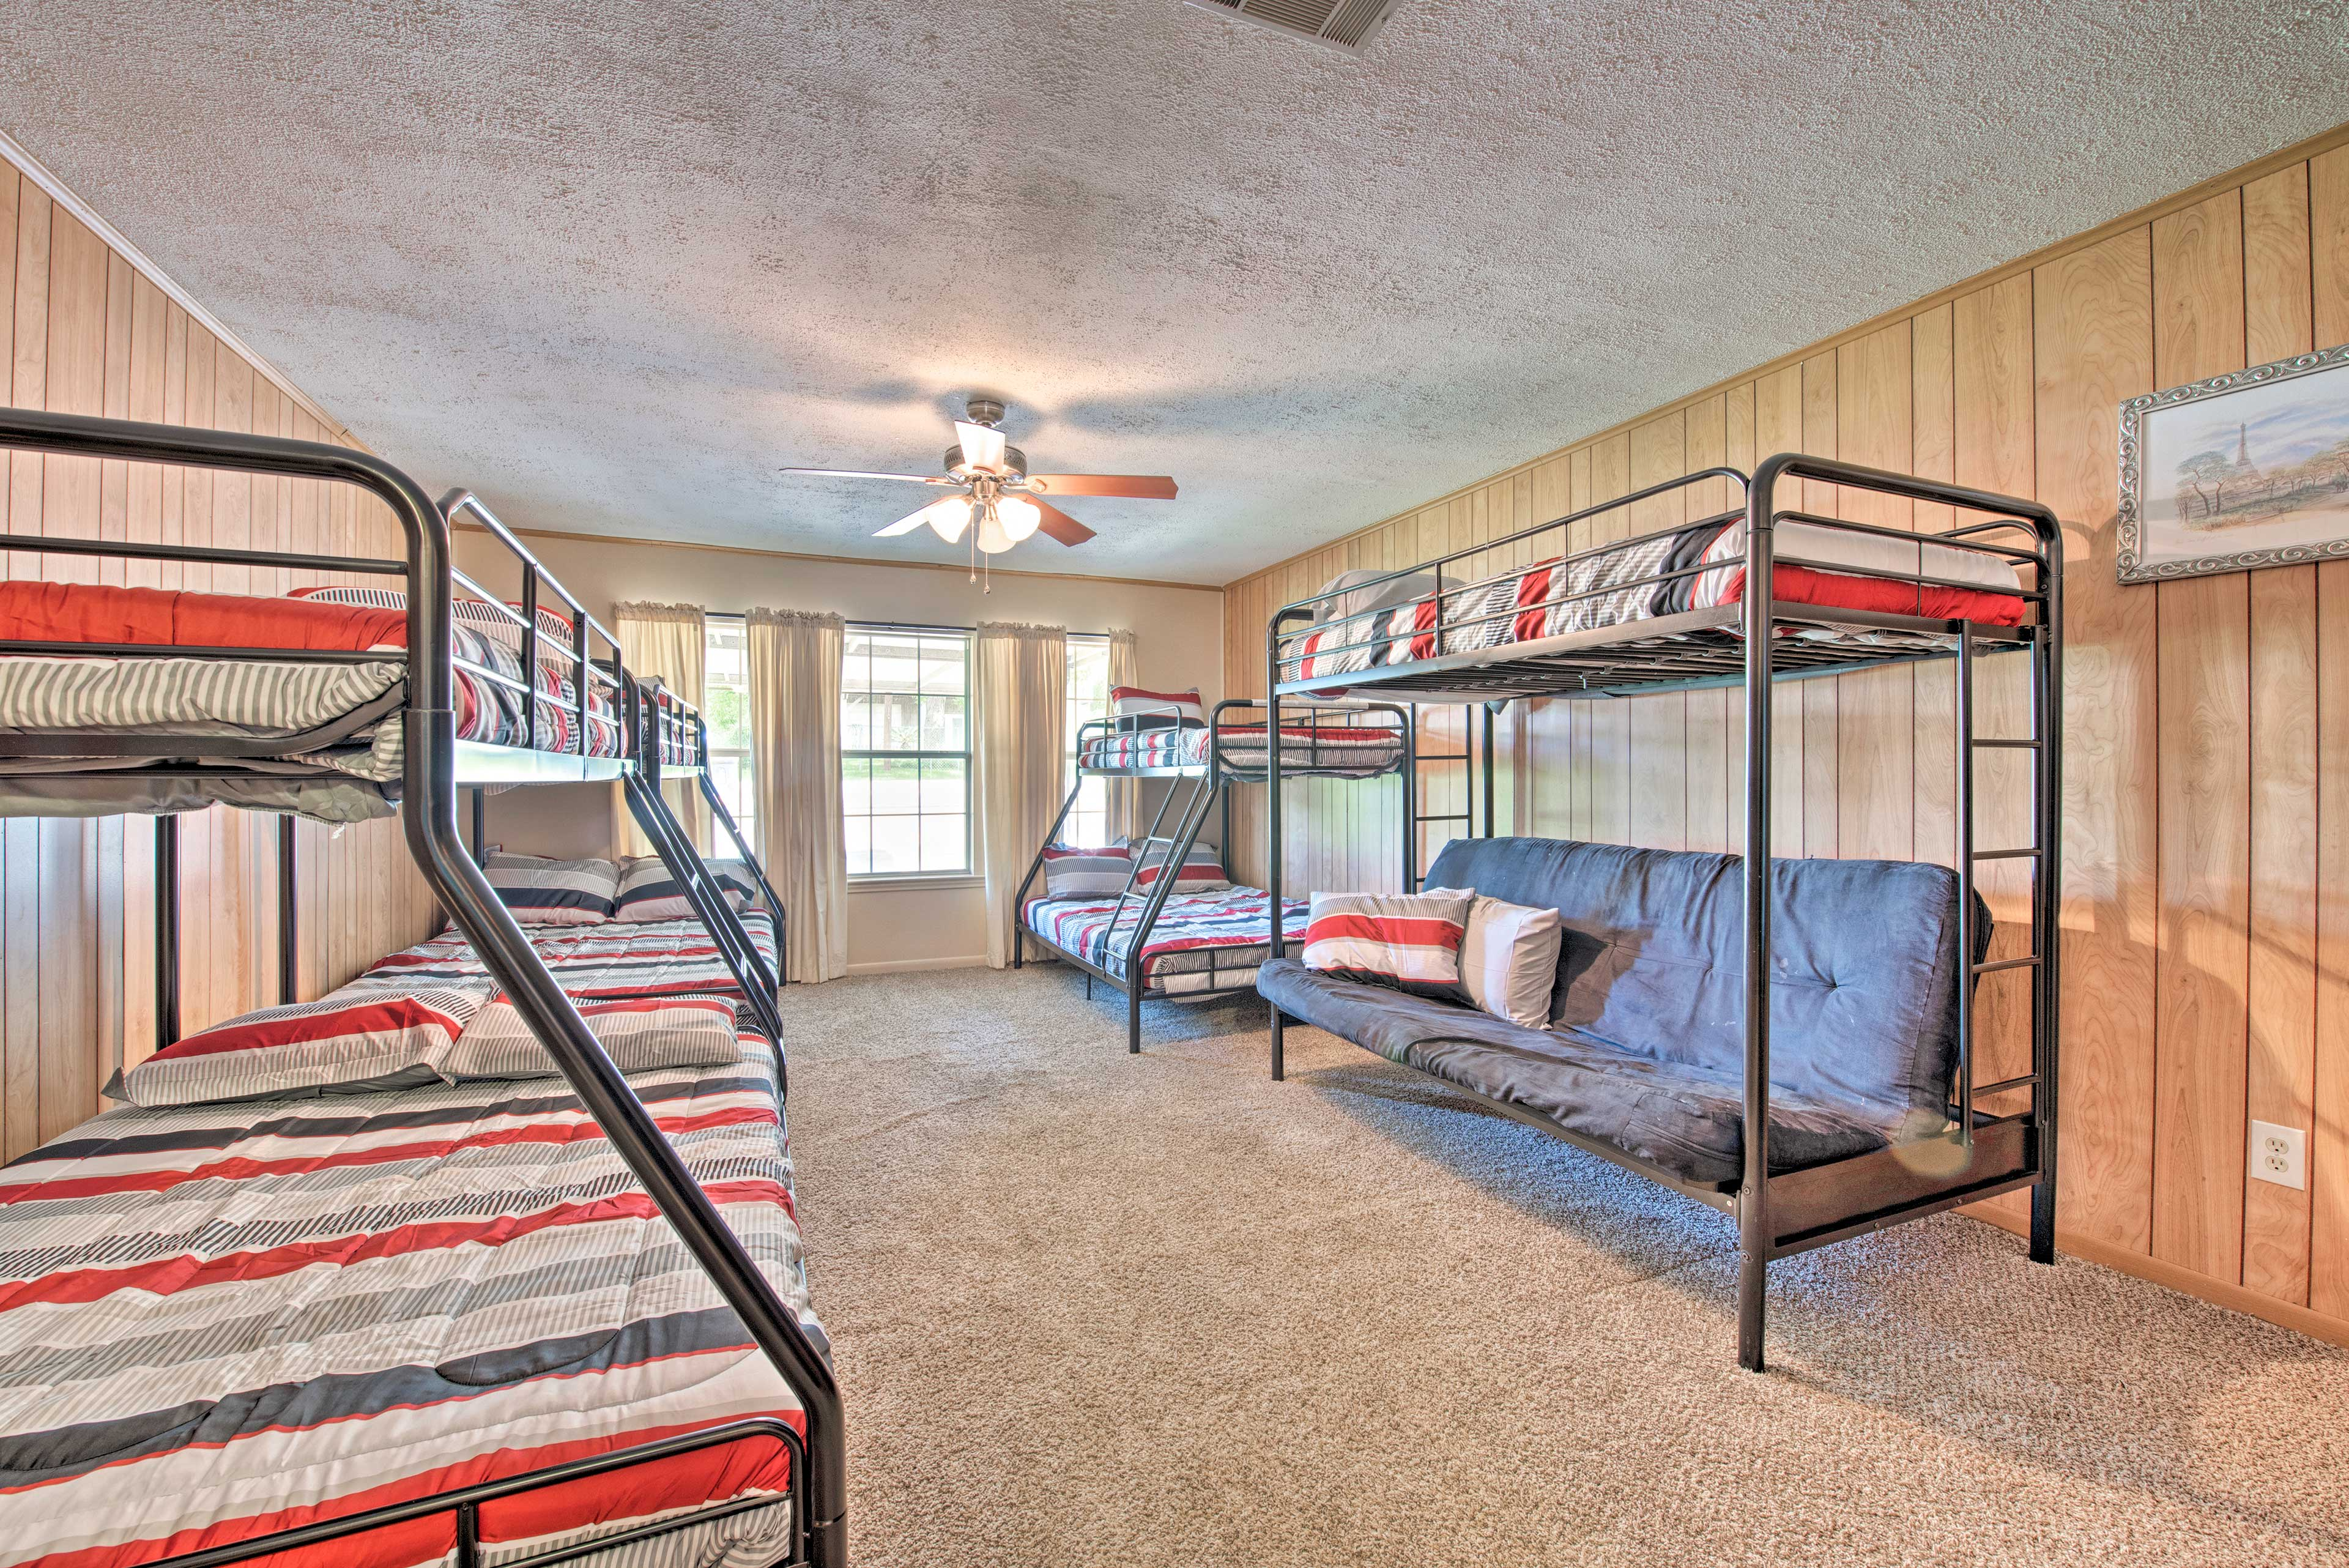 The bunk room features 4 twin/full bunk beds.